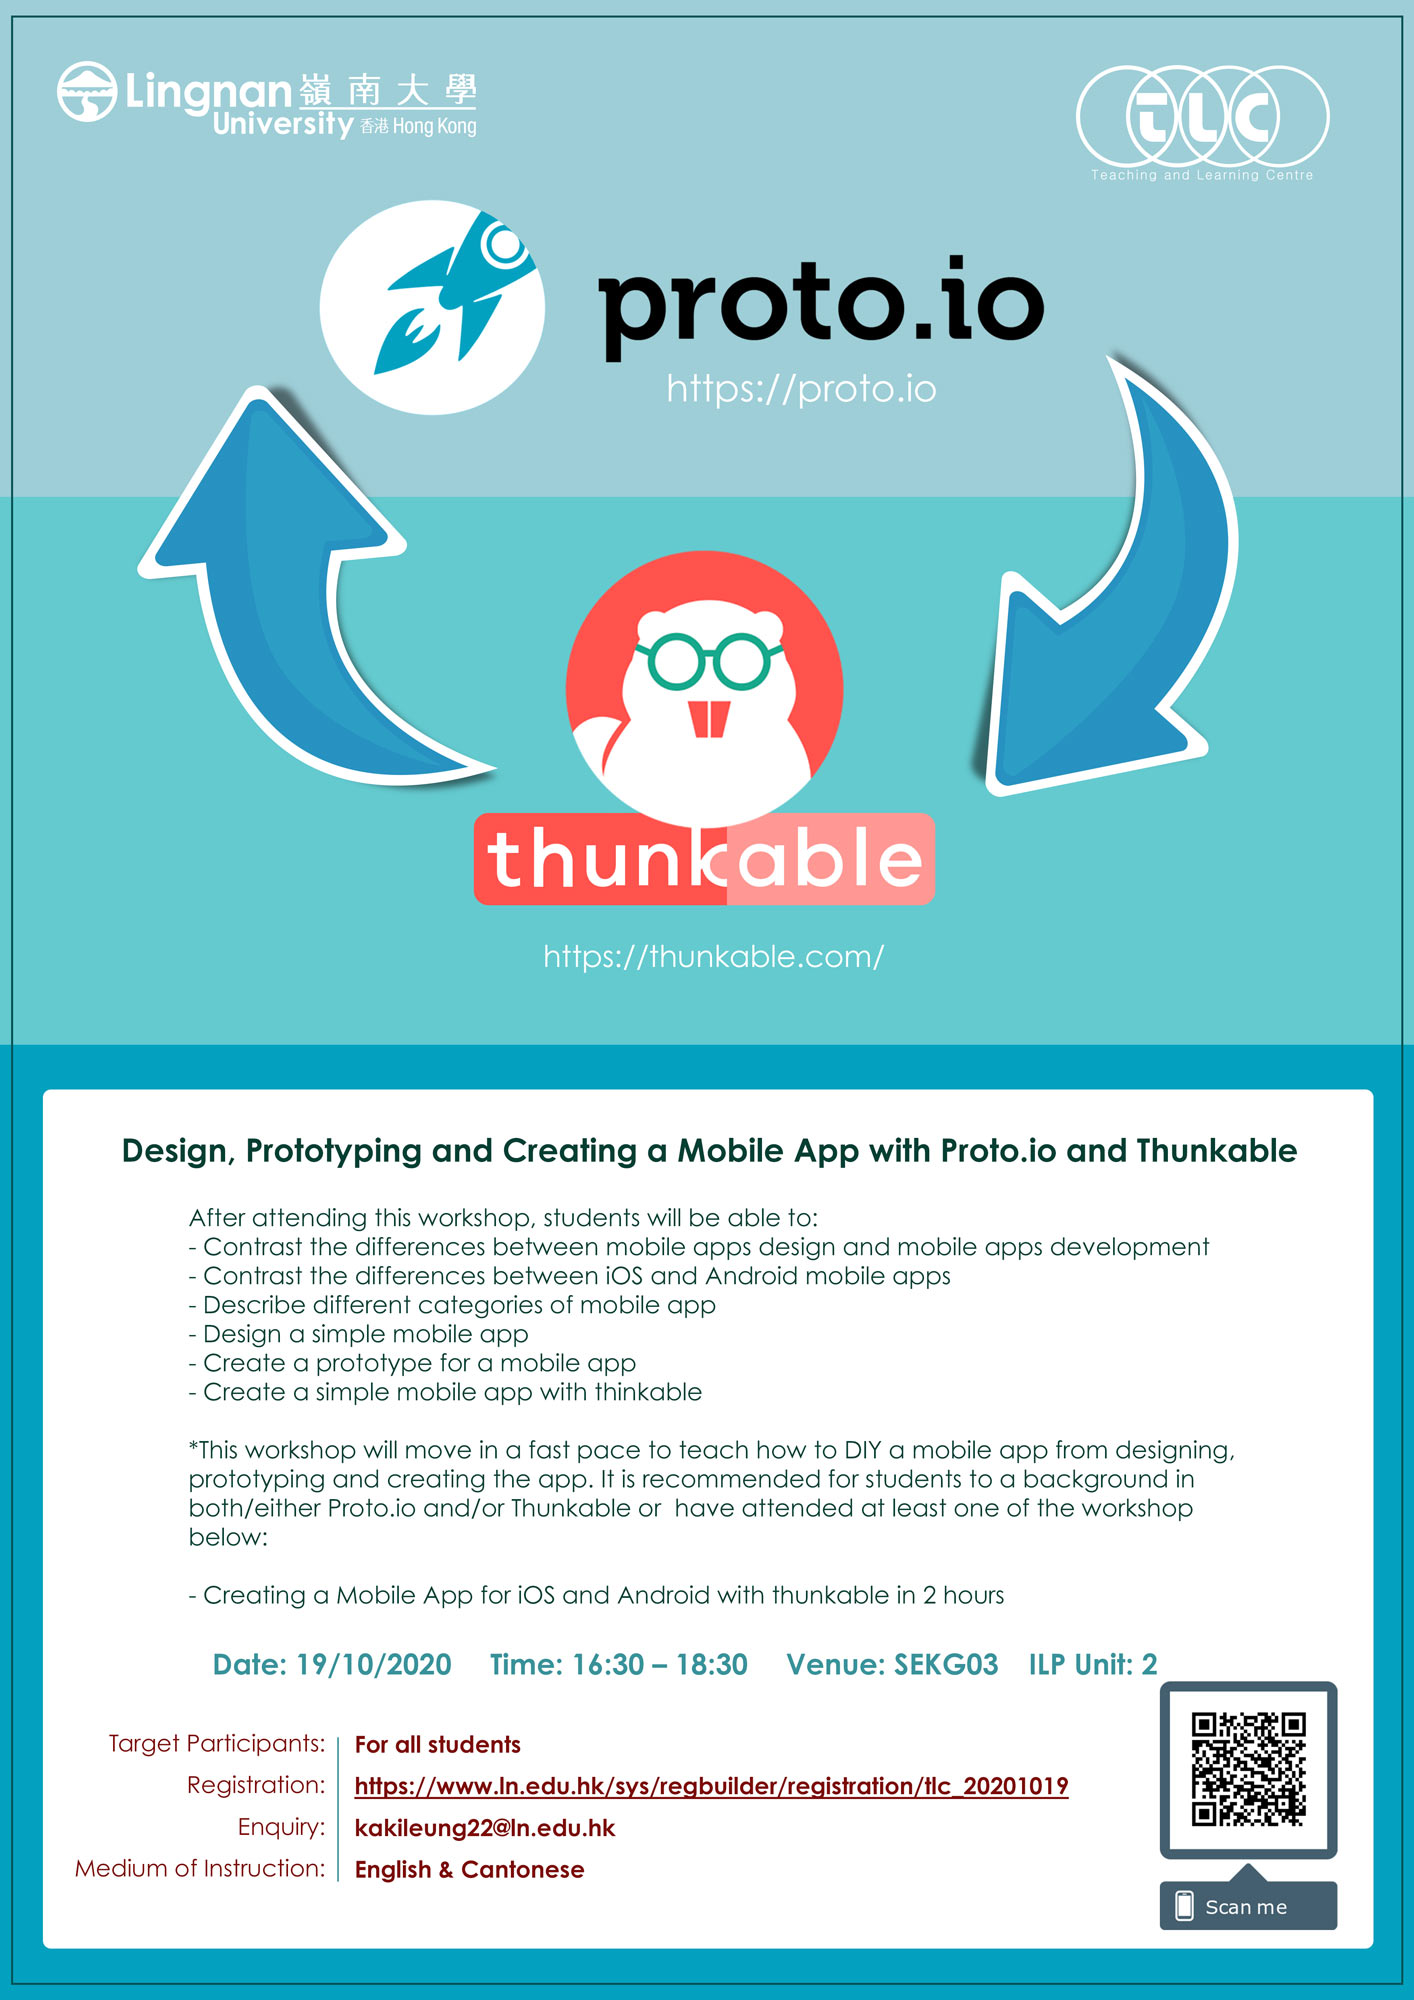 Design, Prototyping and Creating a Mobile App with Proto.io and Thunkable